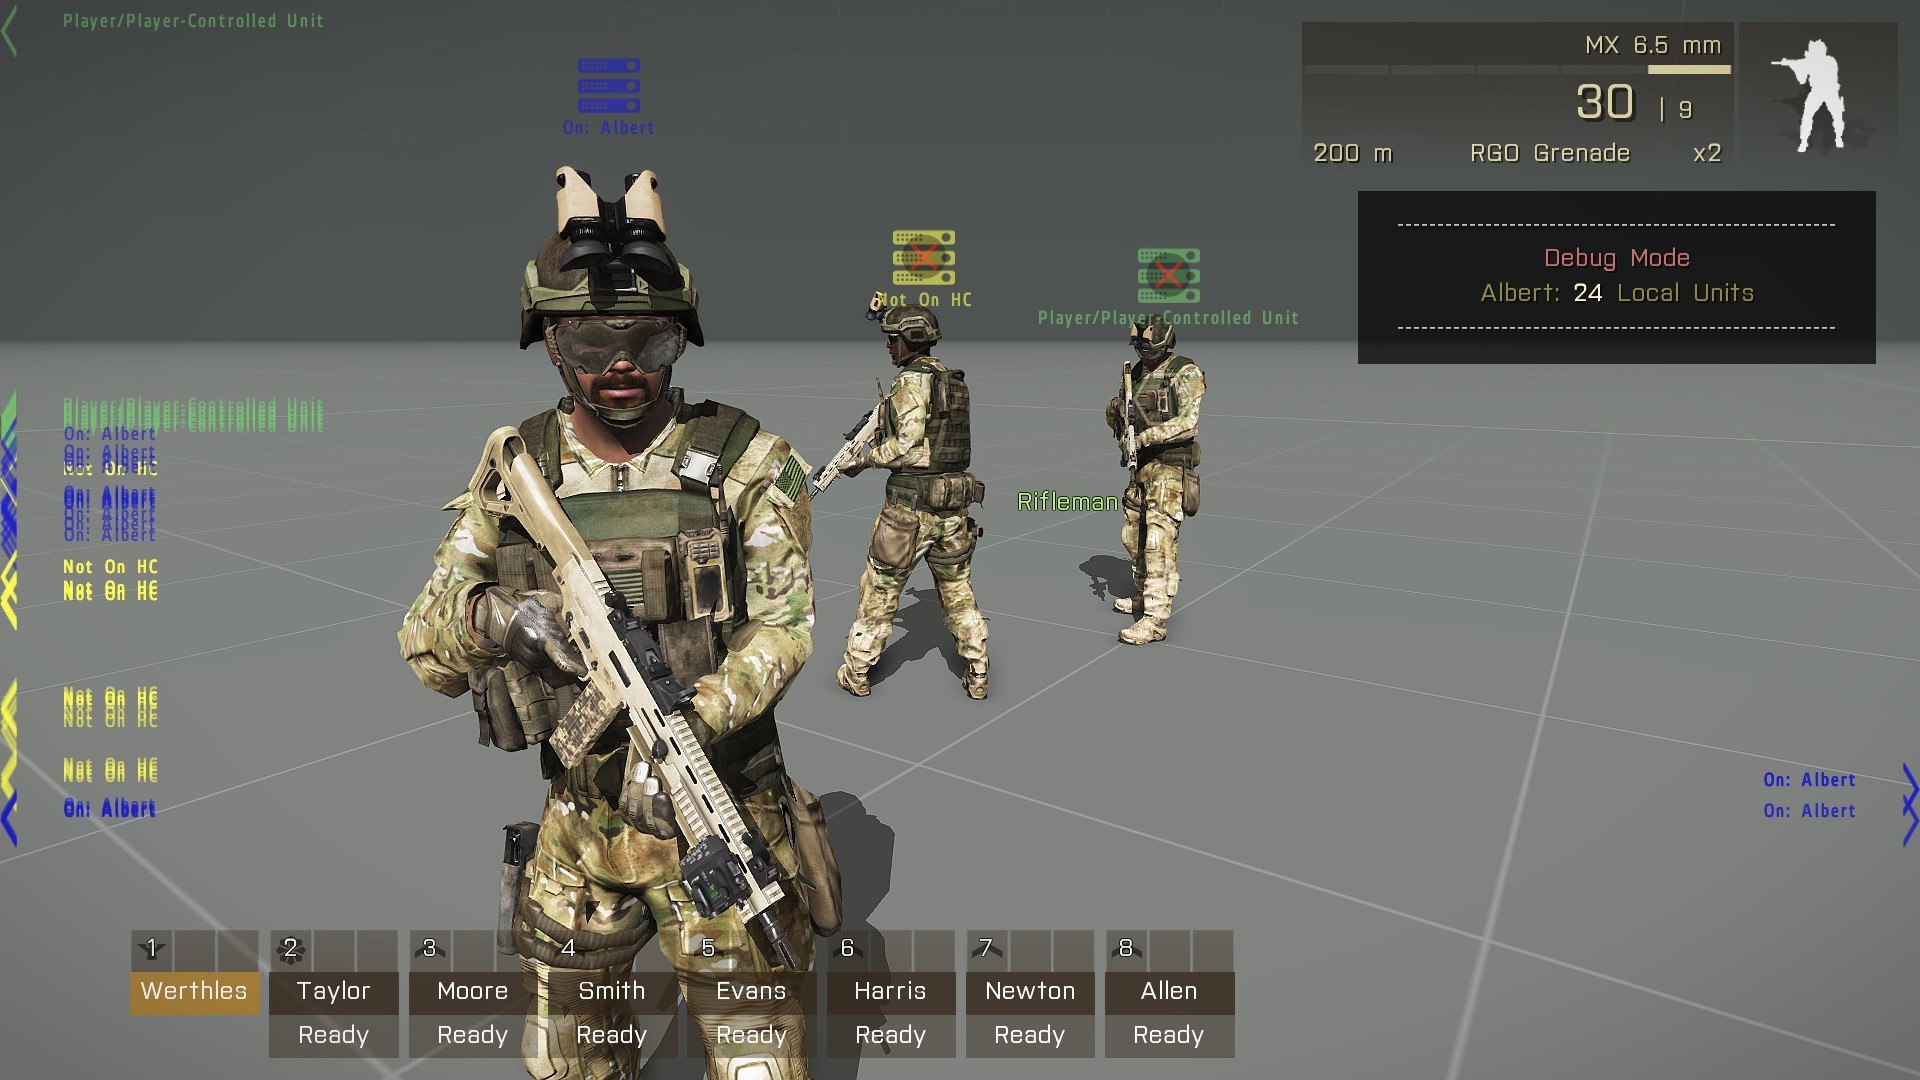 Werthles' Headless Module - ARMA 3 - ADDONS & MODS: COMPLETE